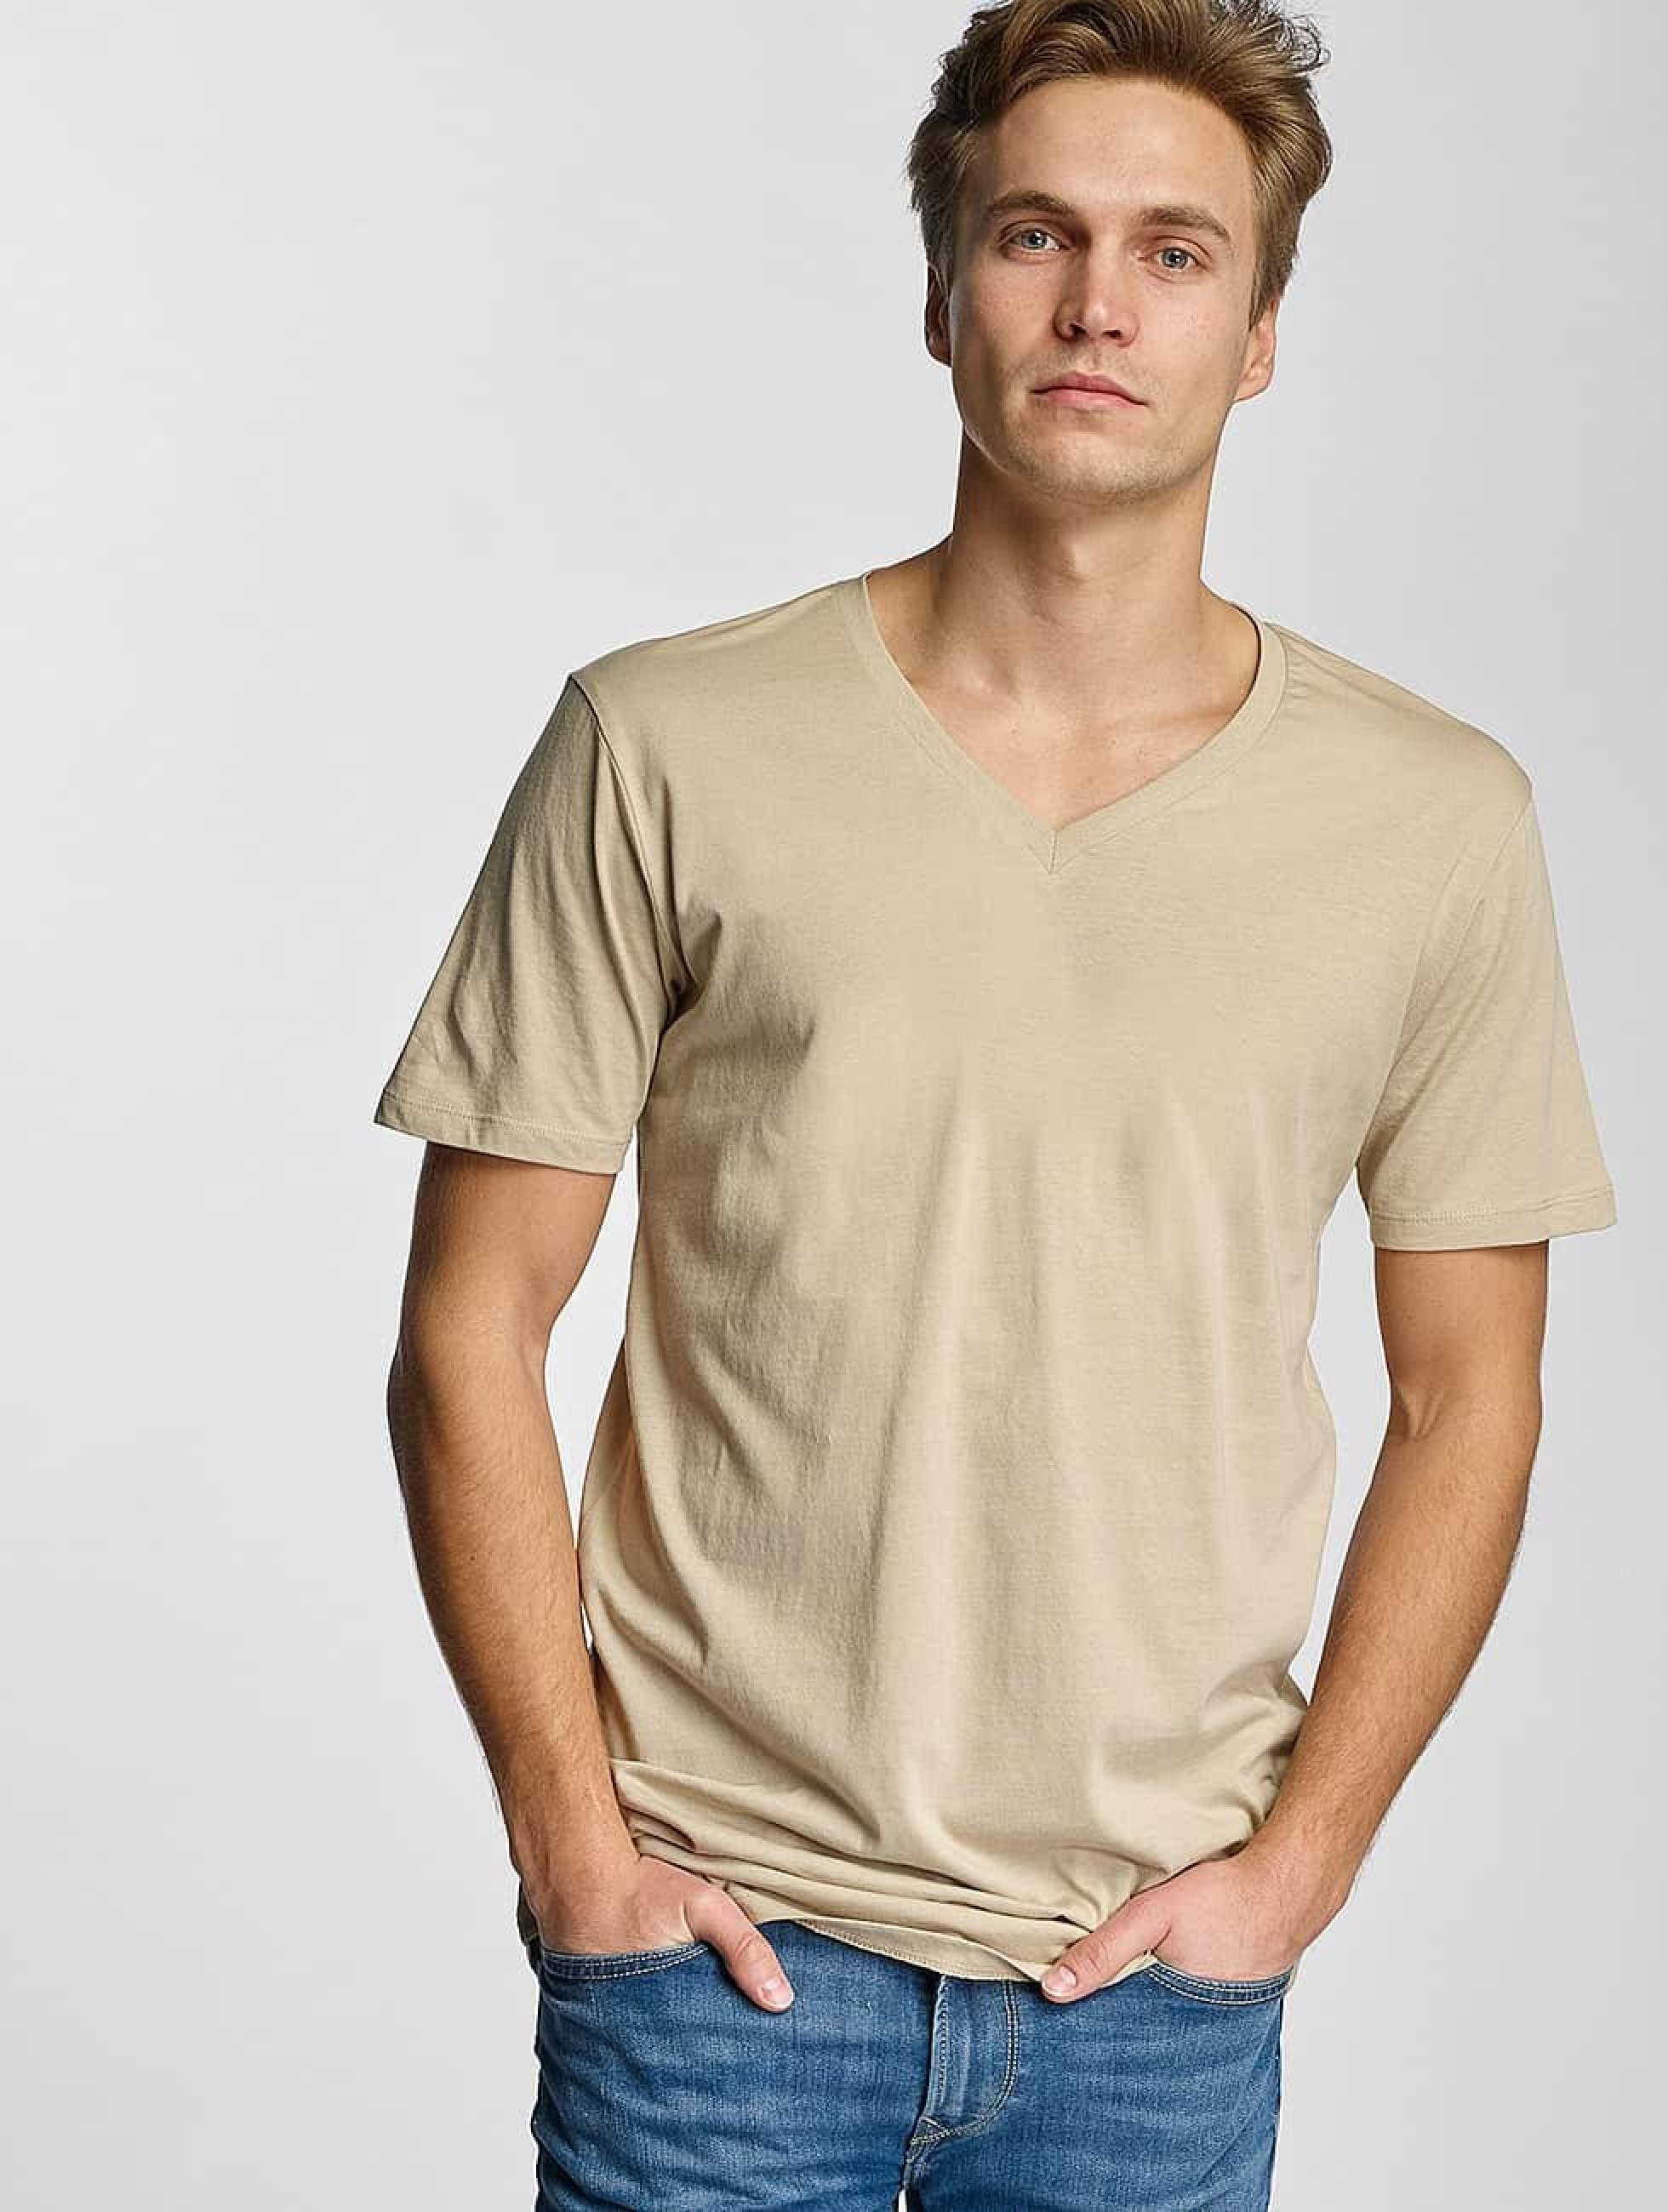 urban classics herren t shirt basic v neck in beige 305300. Black Bedroom Furniture Sets. Home Design Ideas